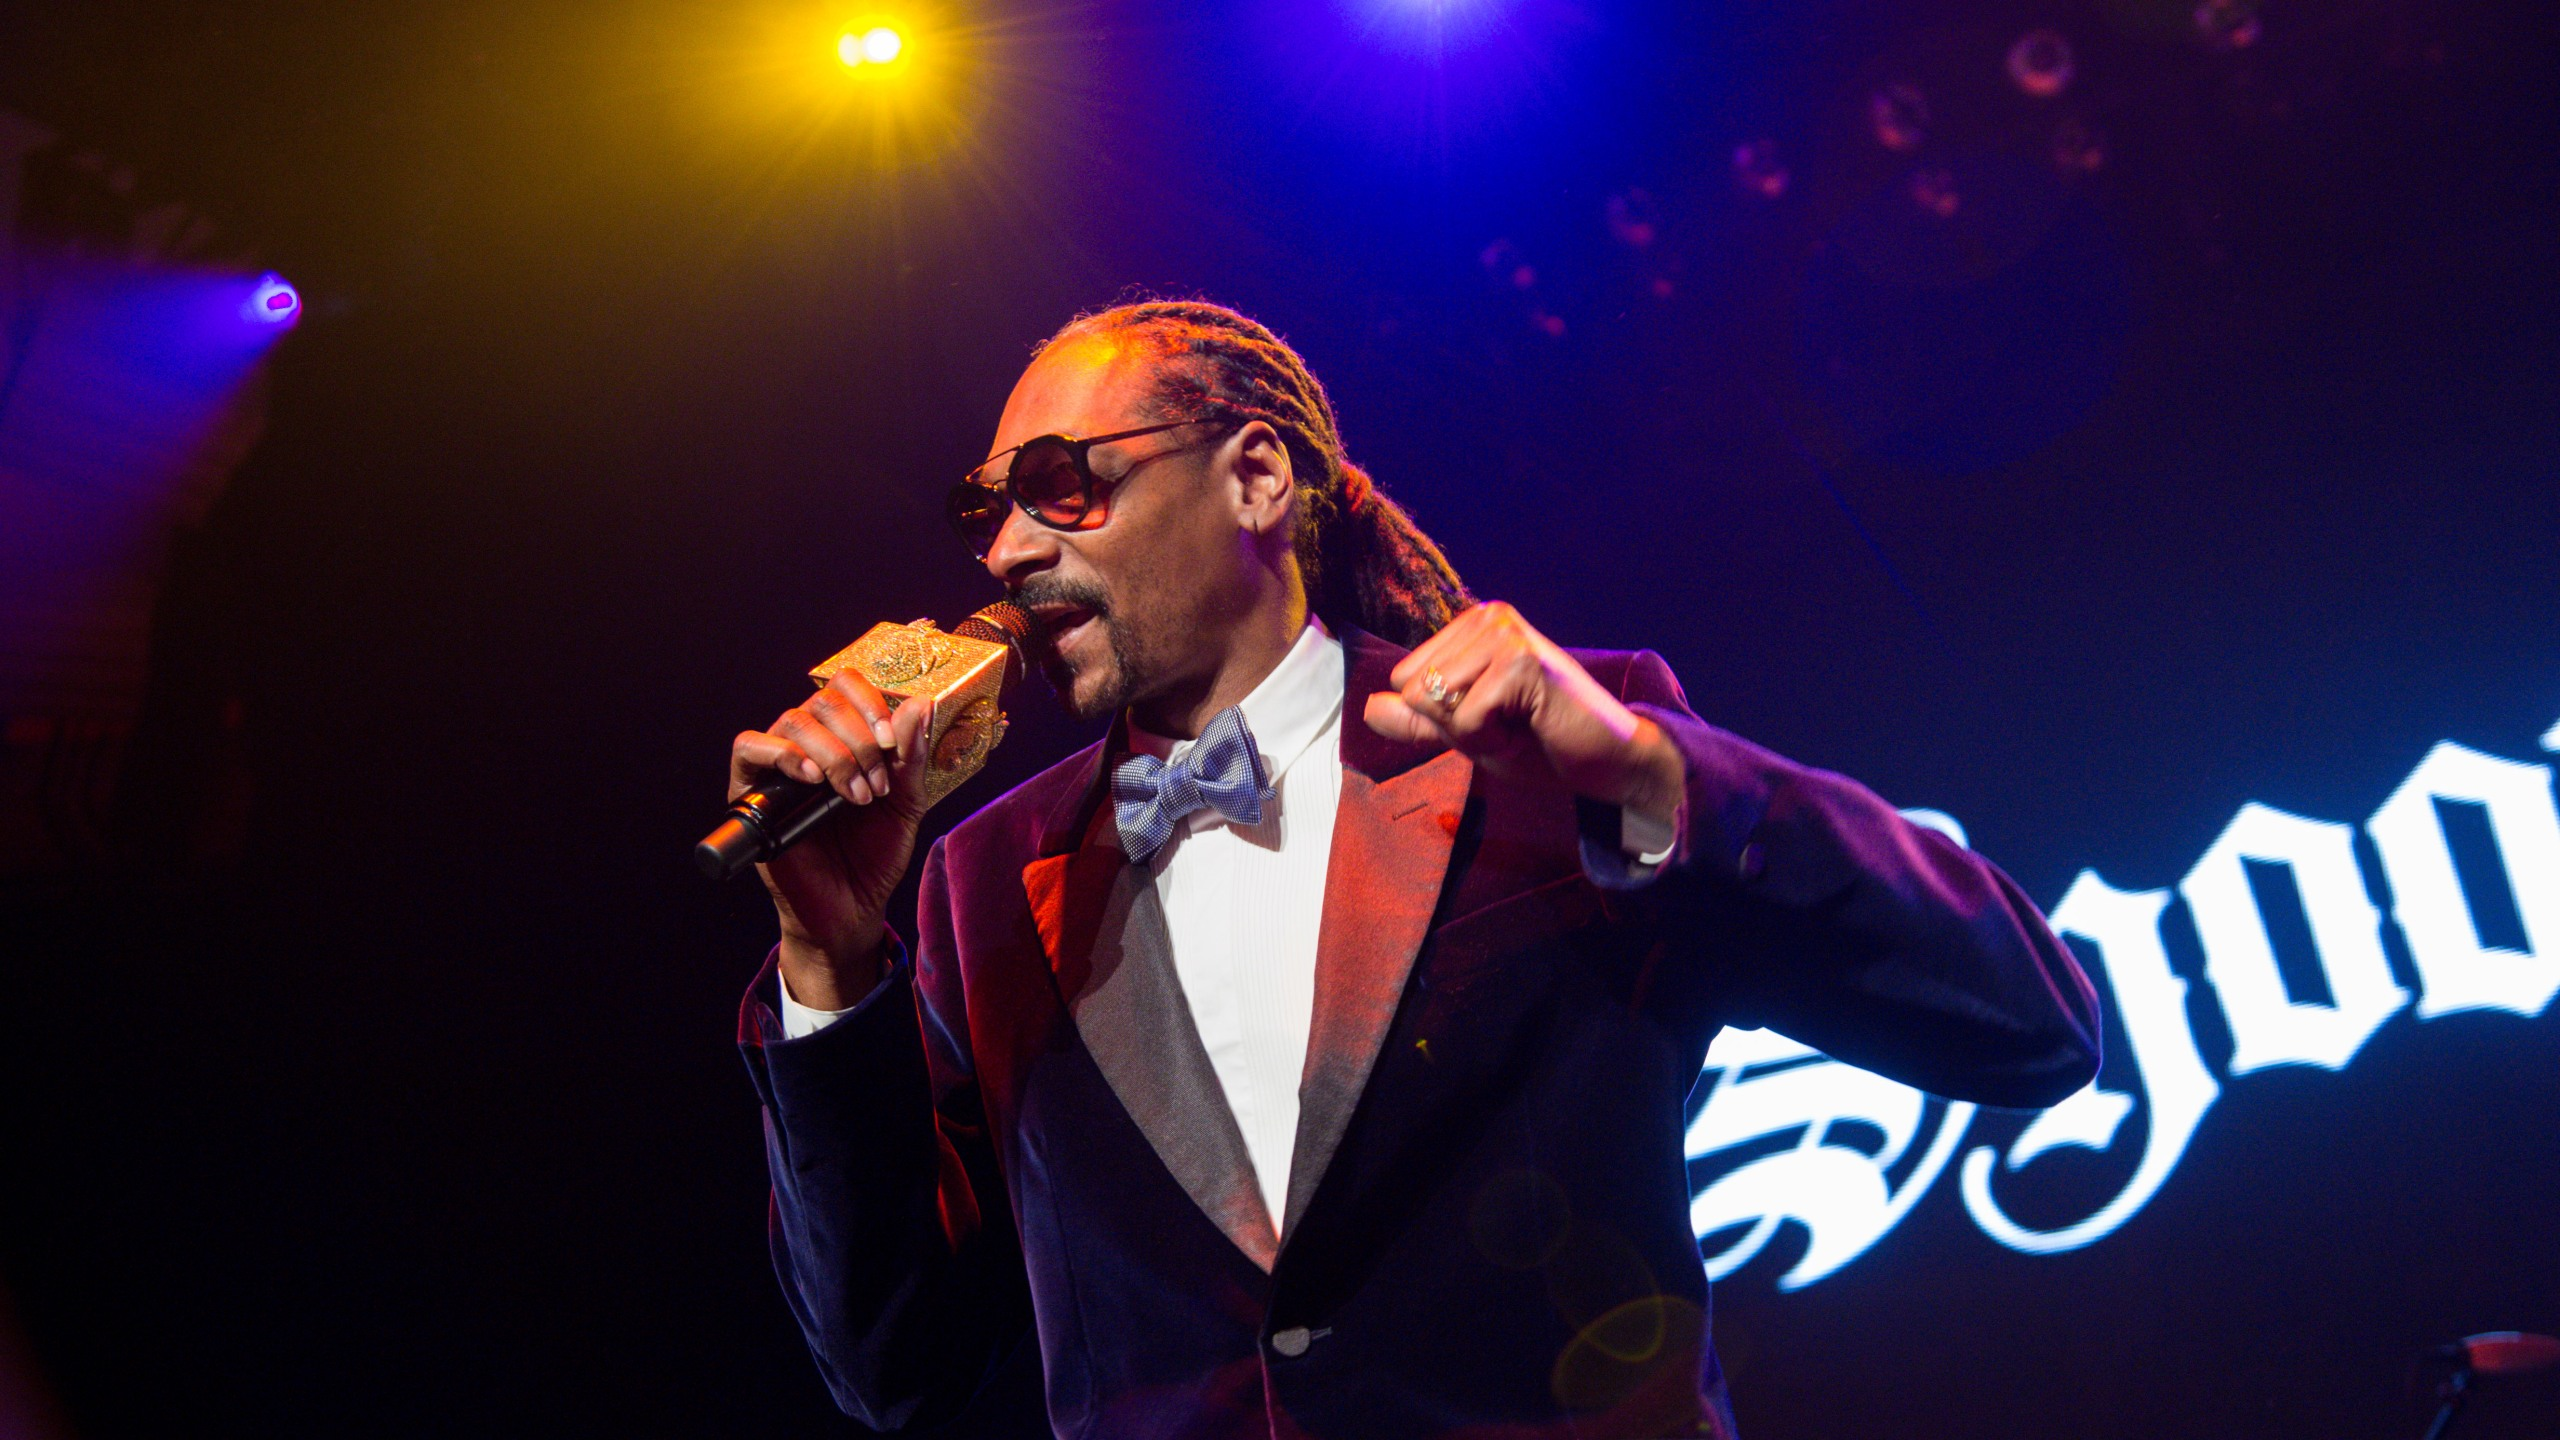 Snoop Dogg performs at The Levi's Pre-Grammy Party With Snoop Dogg at The Hollywood Palladium on Thursday, Feb. 5, 2015, in Los Angeles. (Photo by Rob Latour/Invision/AP)